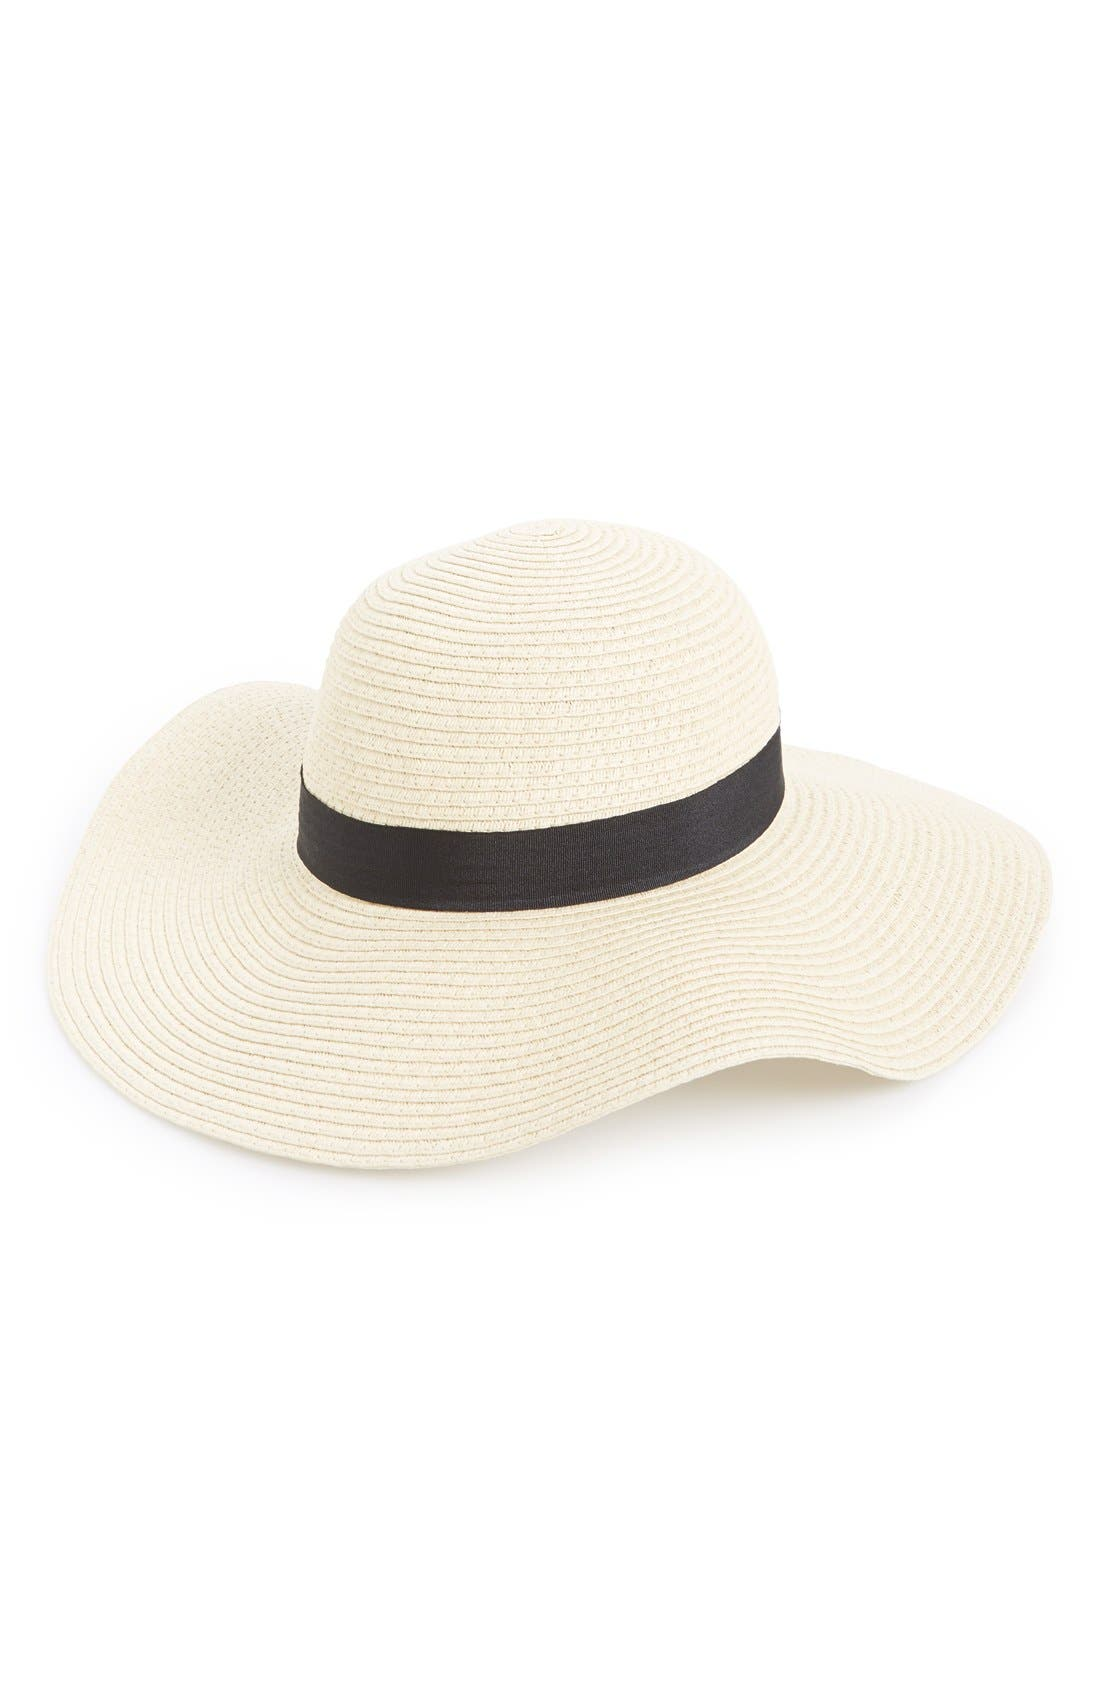 Floppy Straw Hat,                             Main thumbnail 1, color,                             Natural